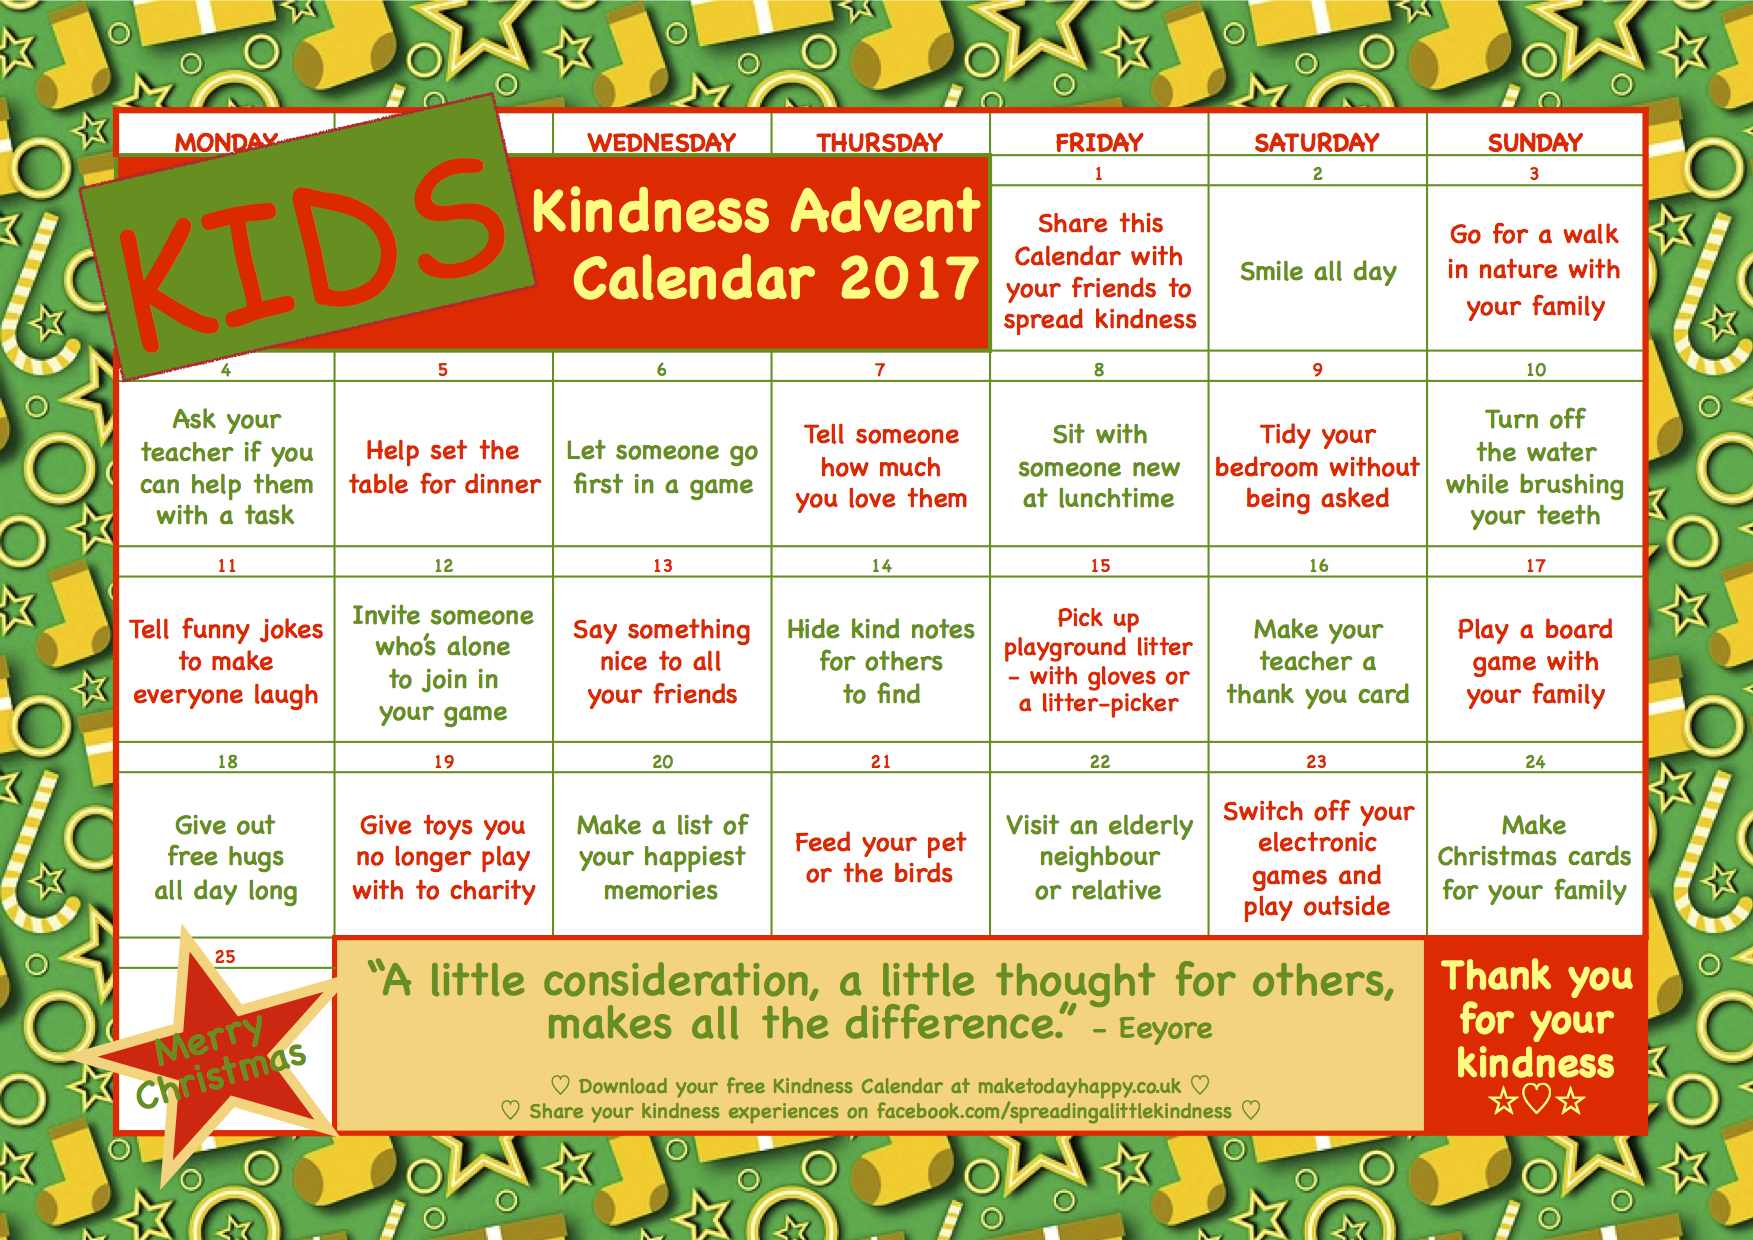 KIDS Kindness Advent Calendar 2017.jpg